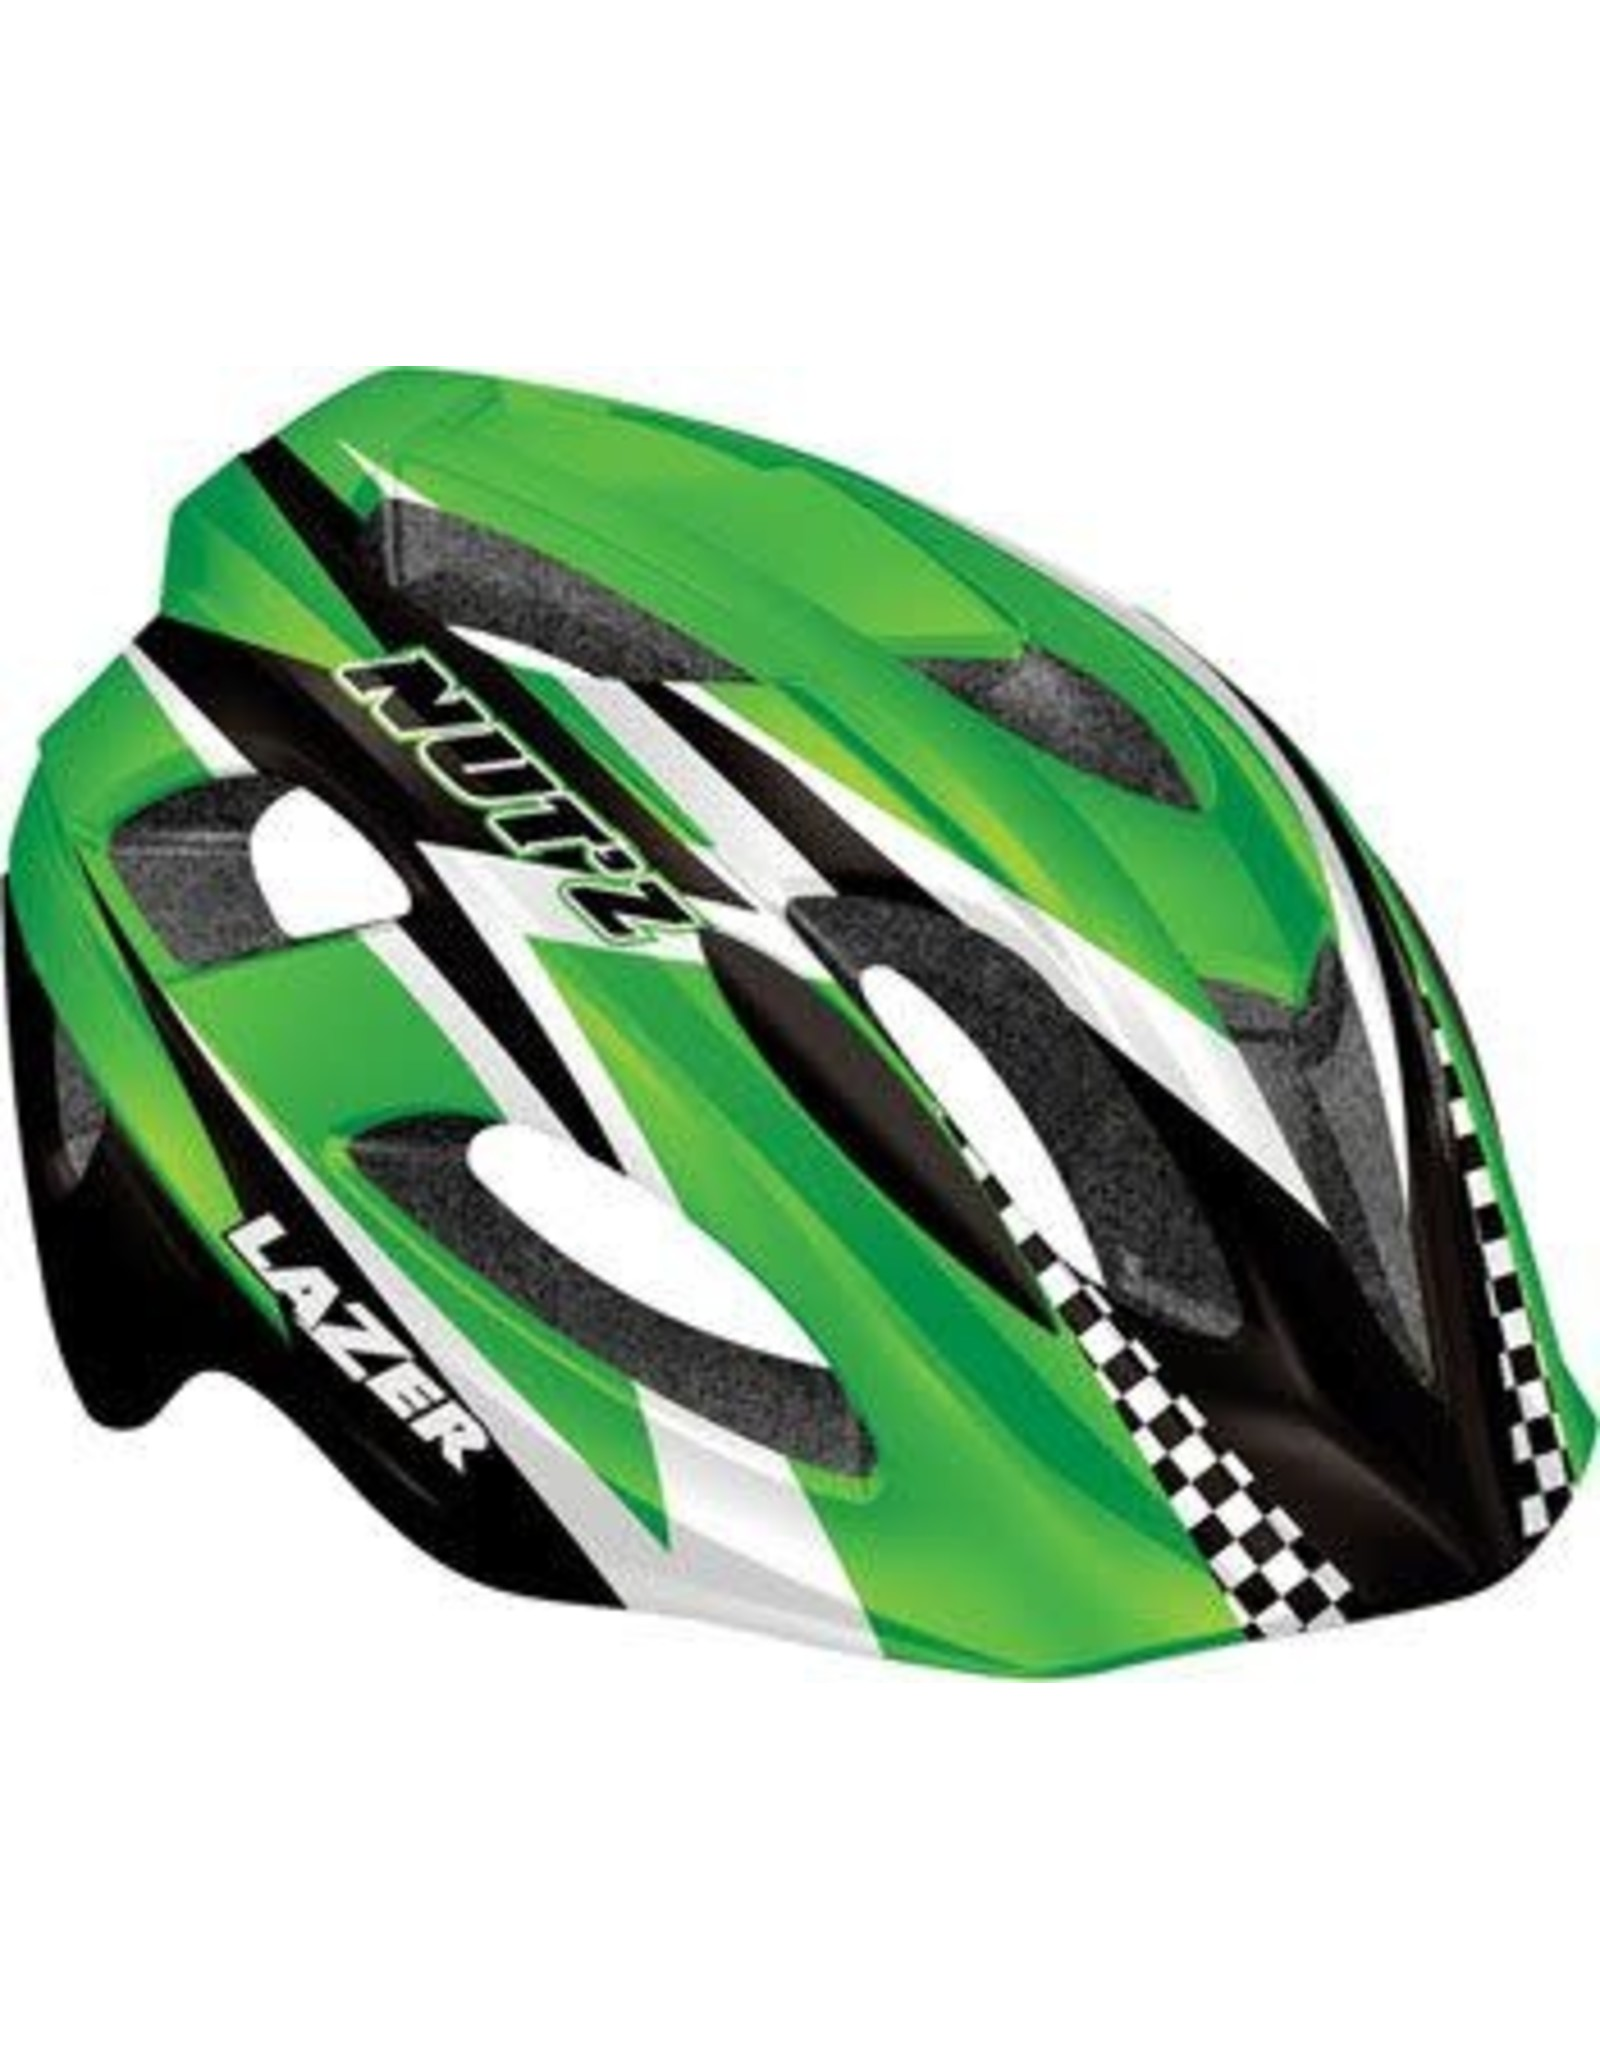 Lazer Nut'z race helmet green